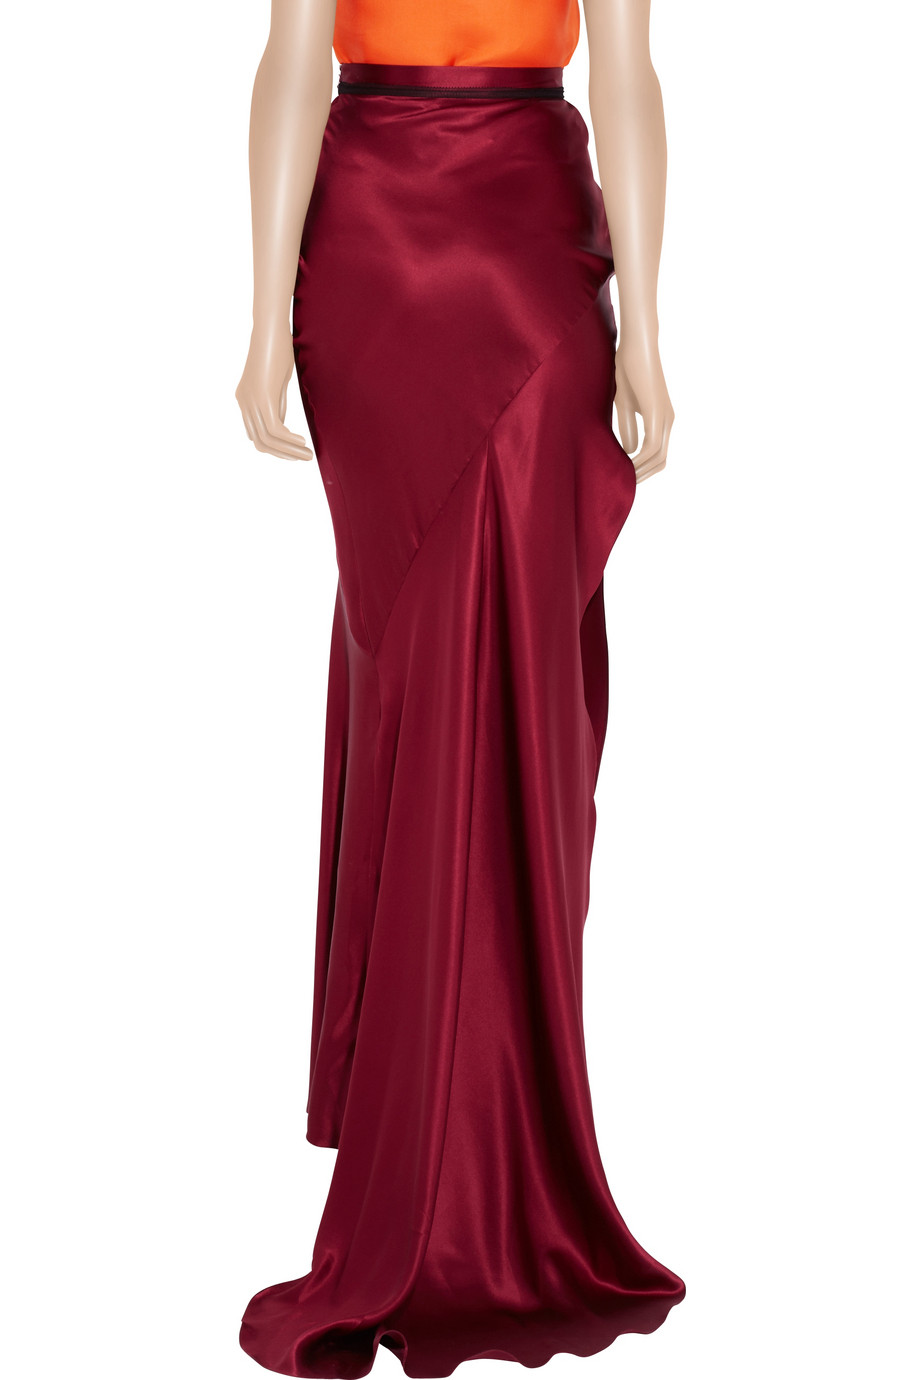 Roksanda Silk-satin Maxi Skirt in Red | Lyst